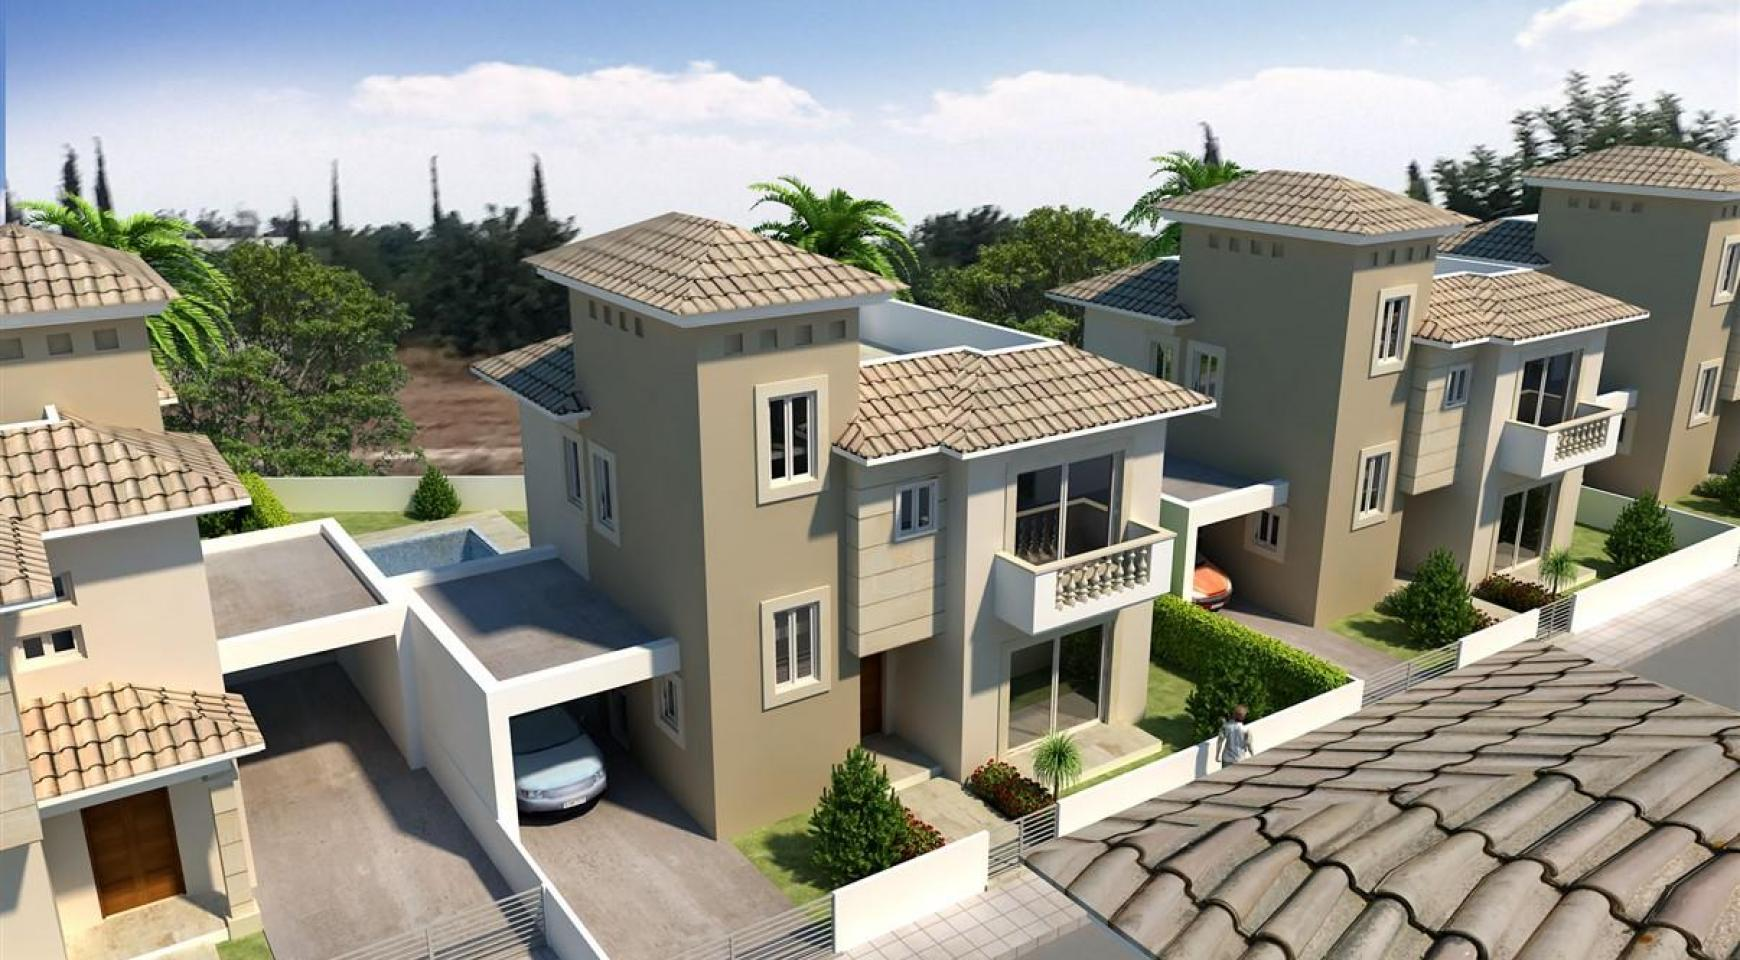 3 Bedroom Villa within a New Project - 4